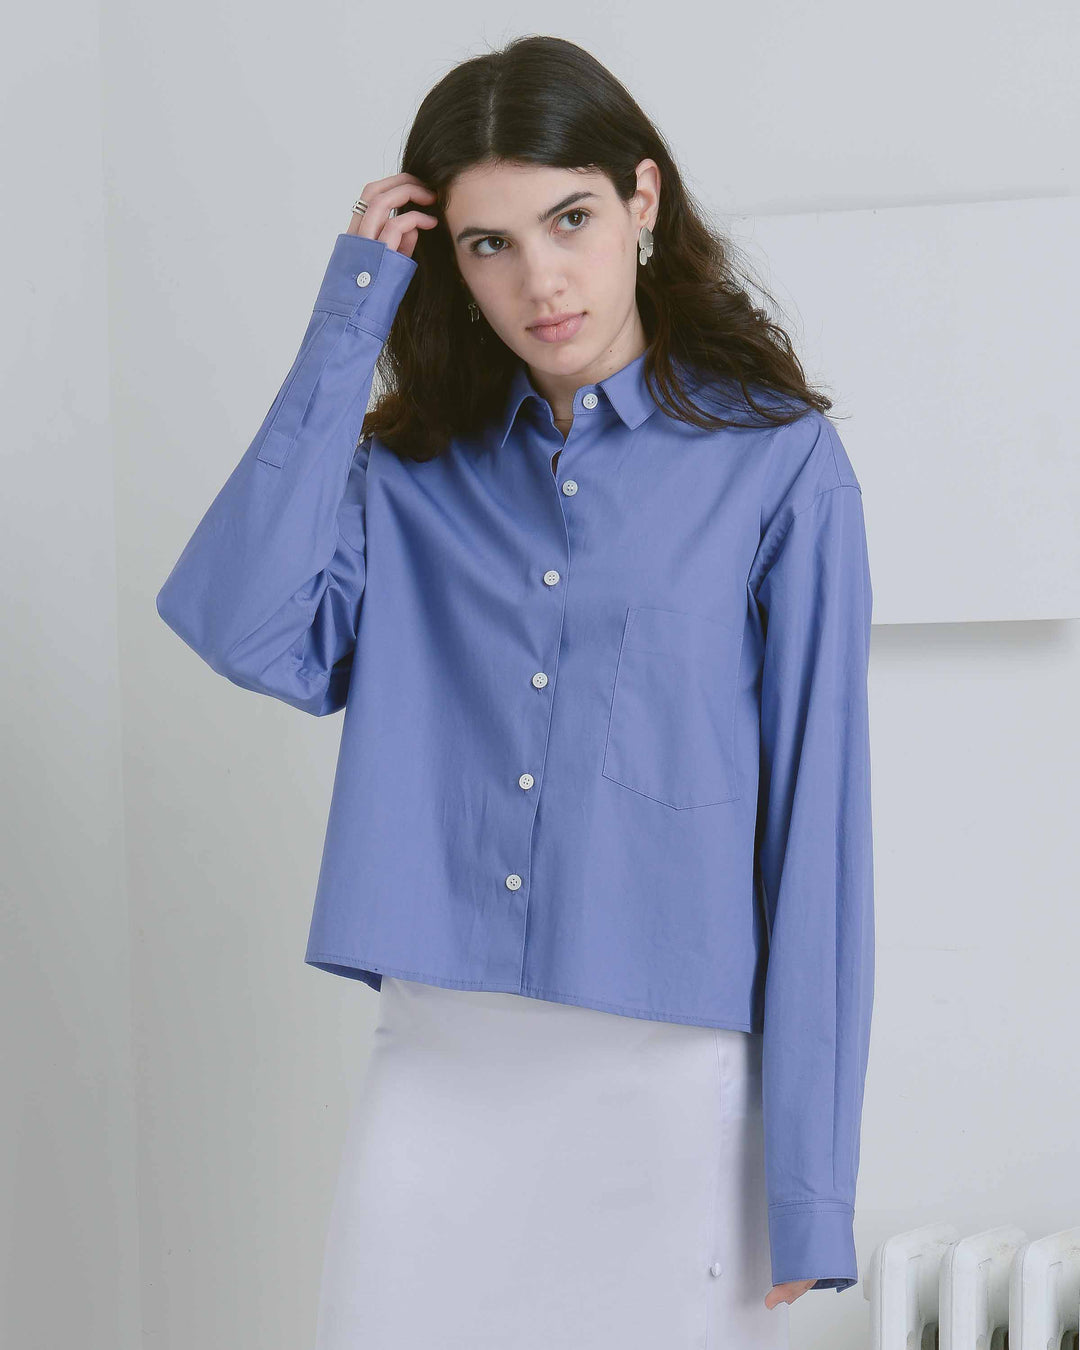 Violet Ruth Boy Shirt